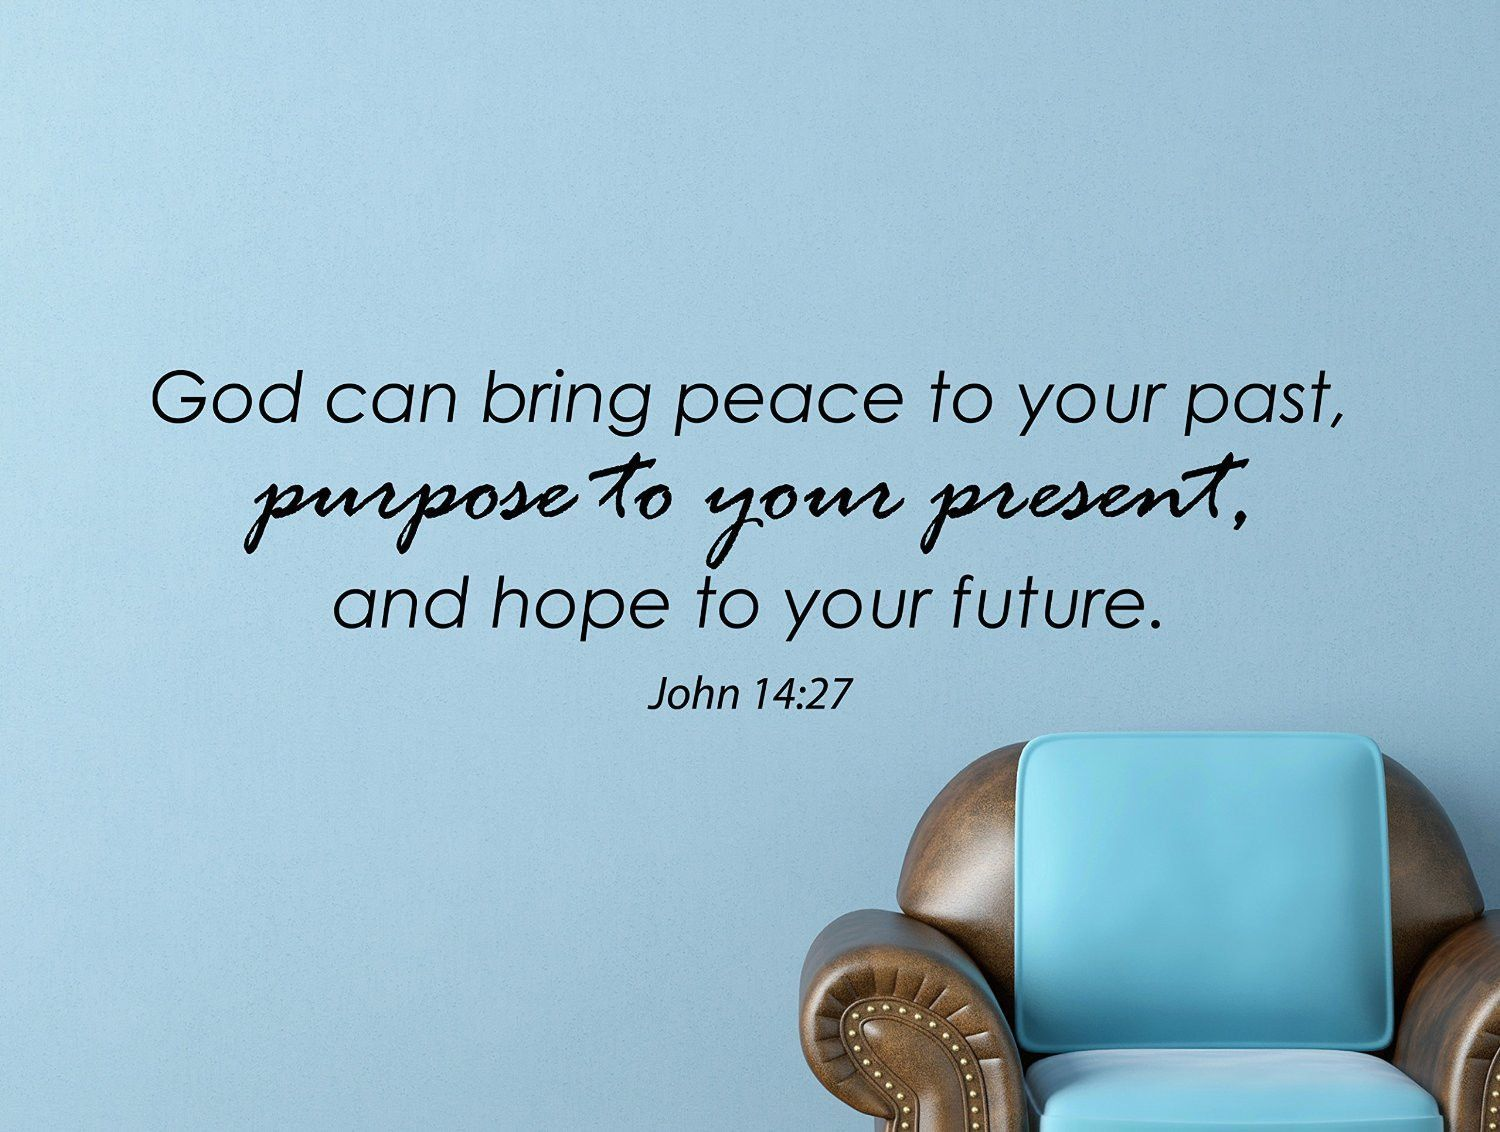 Bible Quotes About Peace John 1427 Bible Quote Inspirational Motivational Wall Decal Home